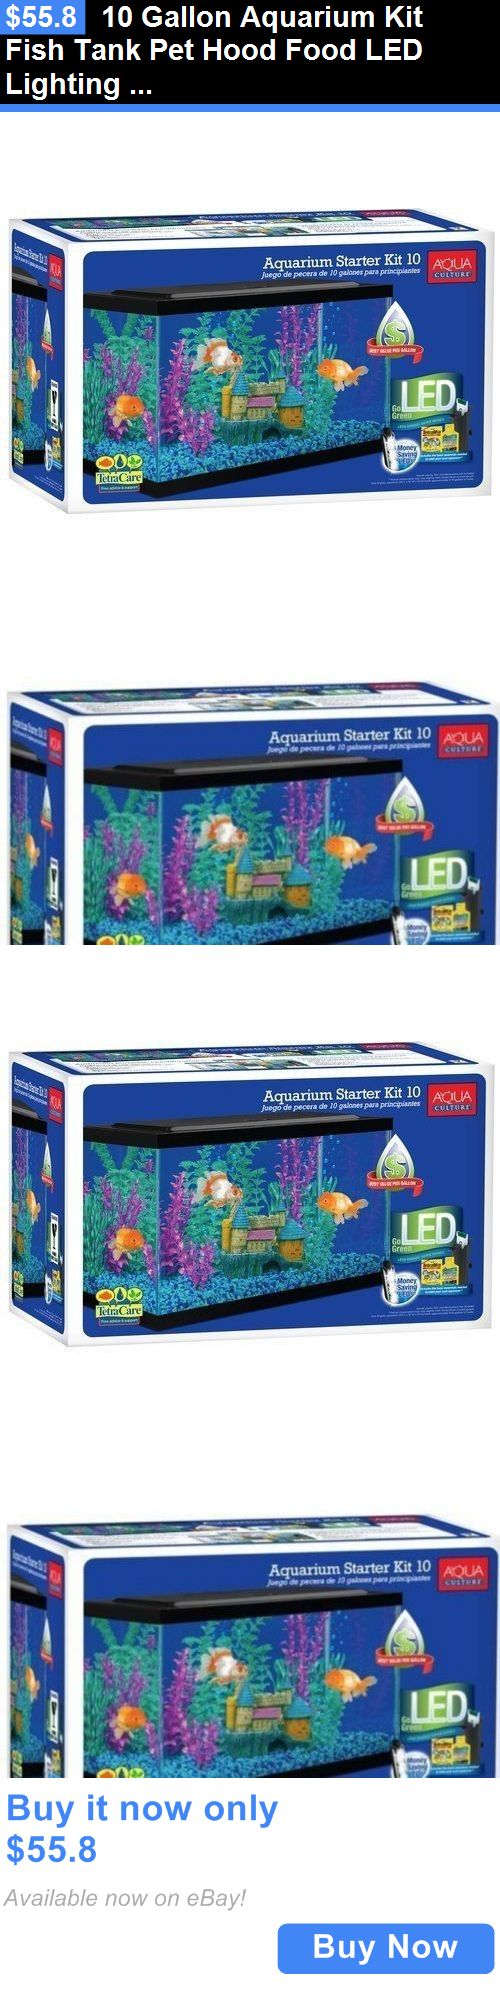 Fish tank heater 10 gallon - Animals Fish And Aquariums 10 Gallon Aquarium Kit Fish Tank Pet Hood Food Led Lighting